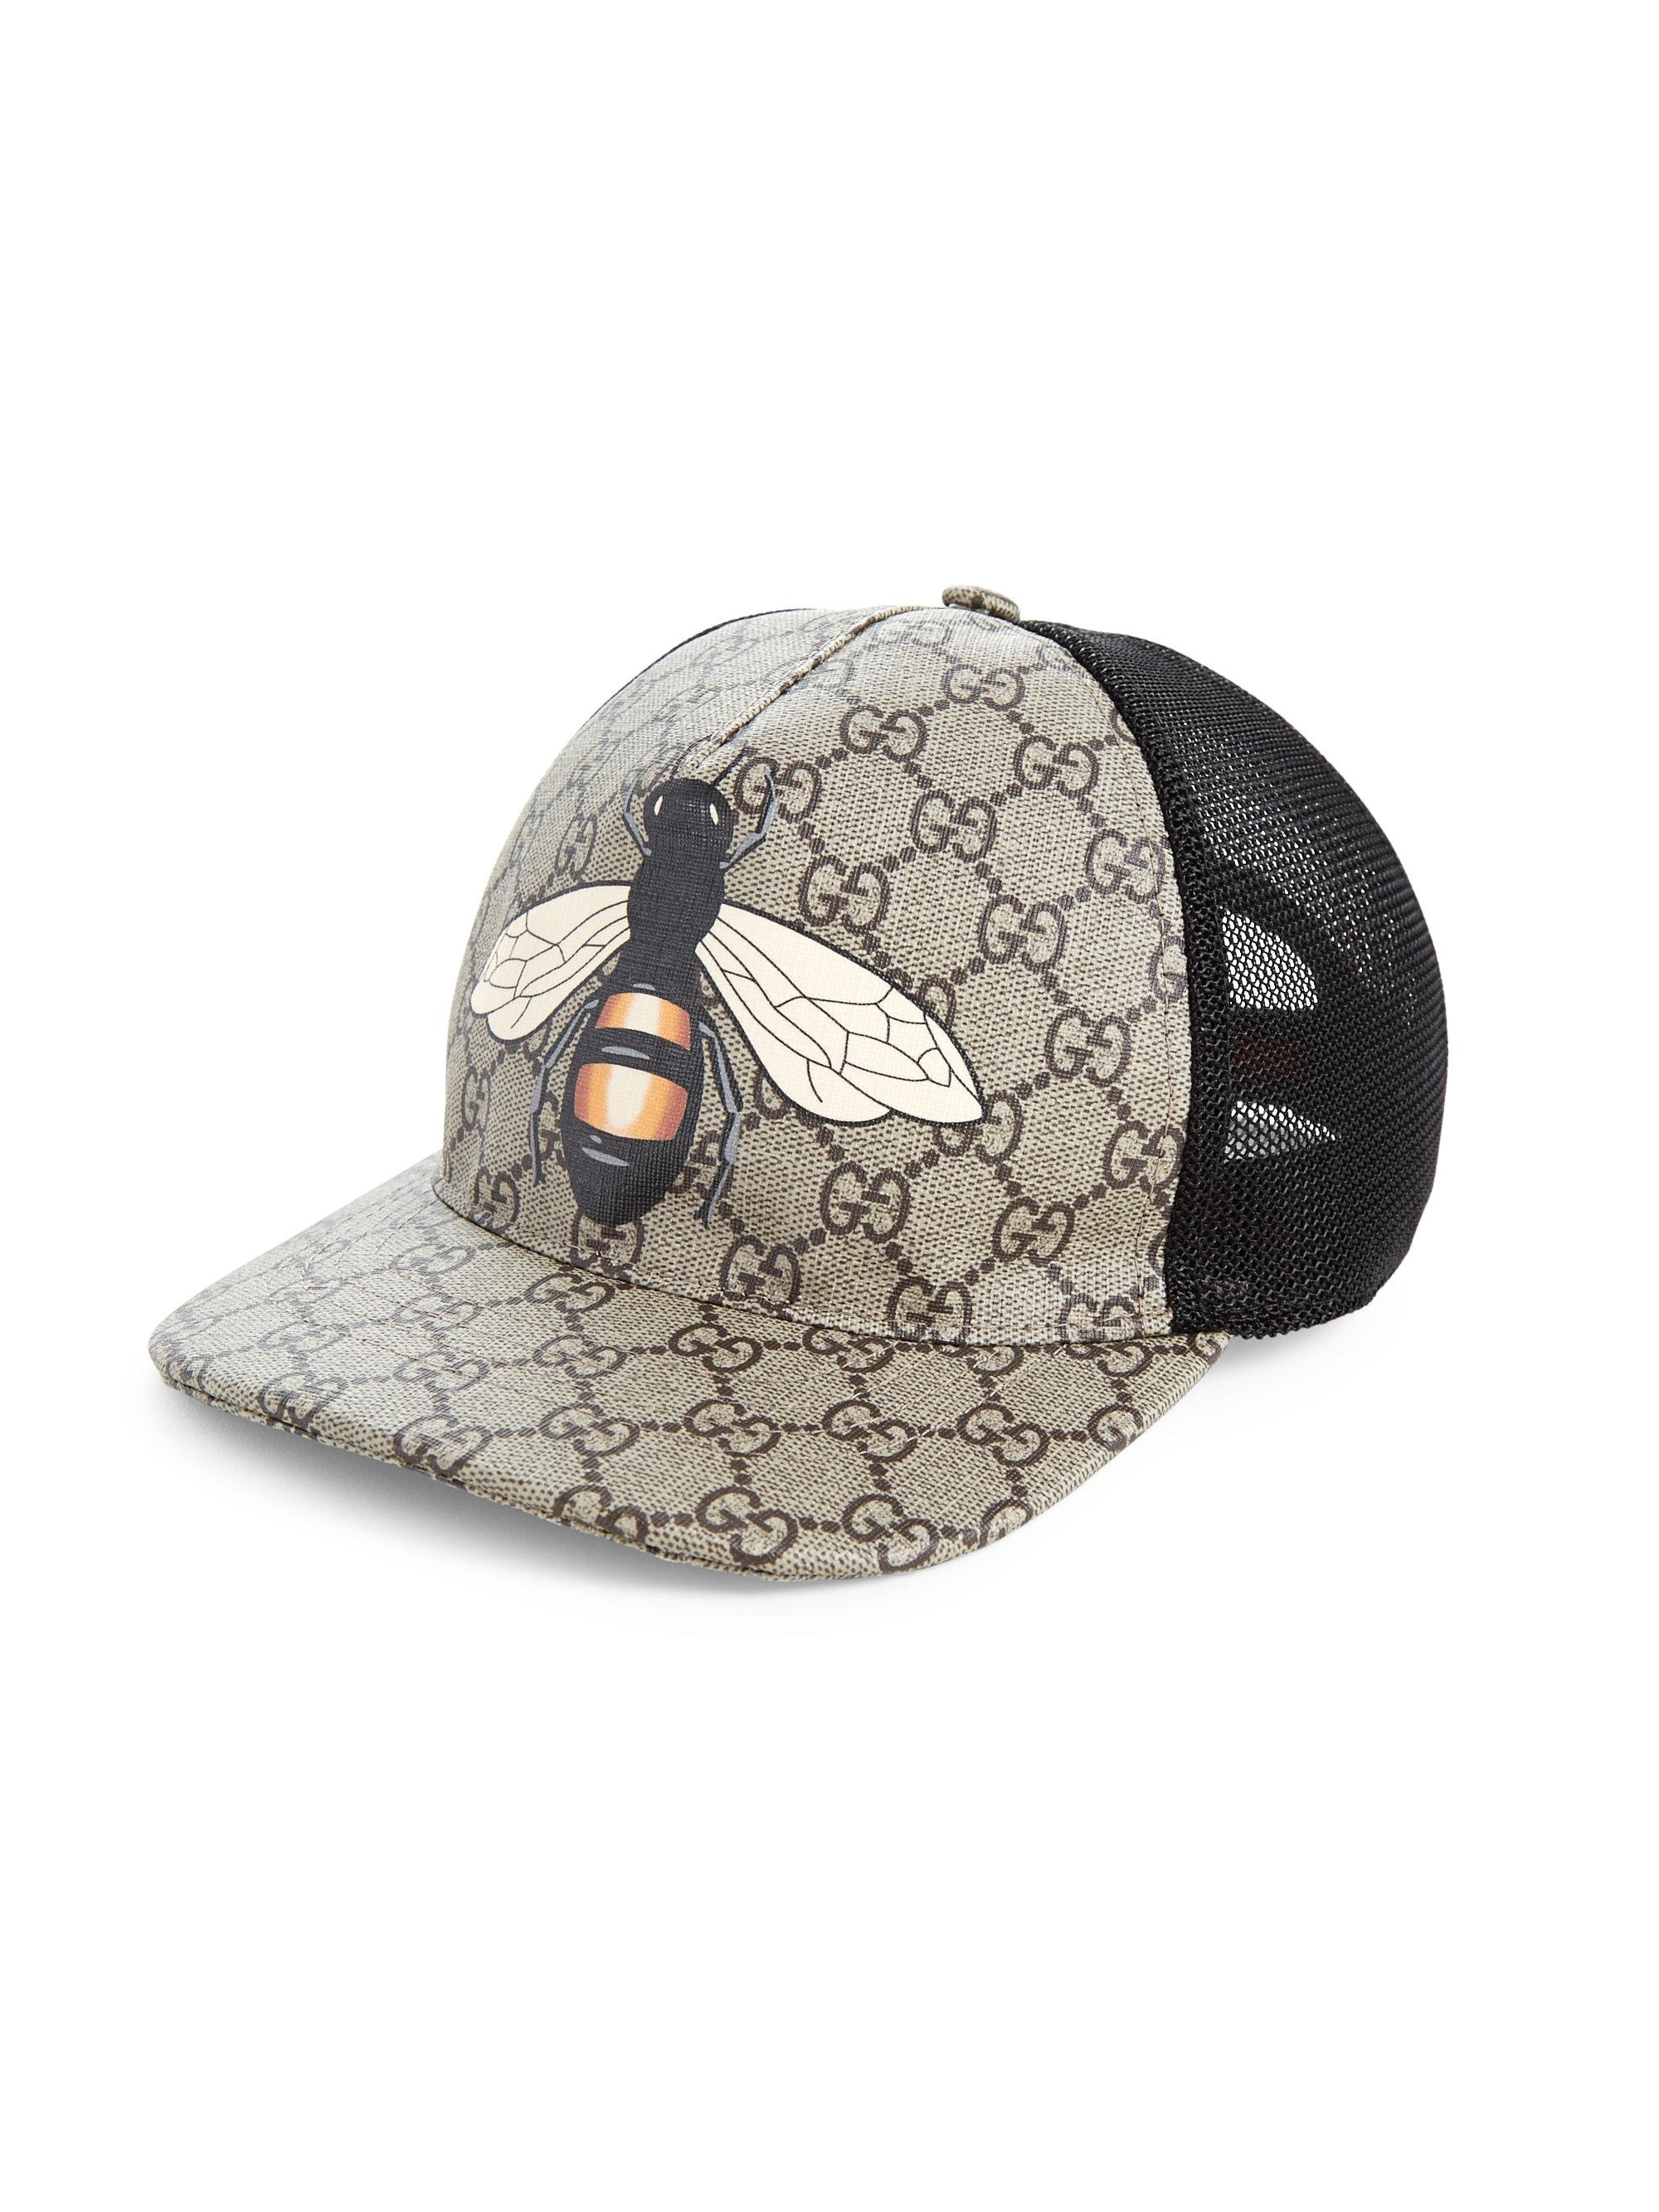 63b845d4daa37f Lyst - Gucci Bee Baseball Cap in Natural for Men